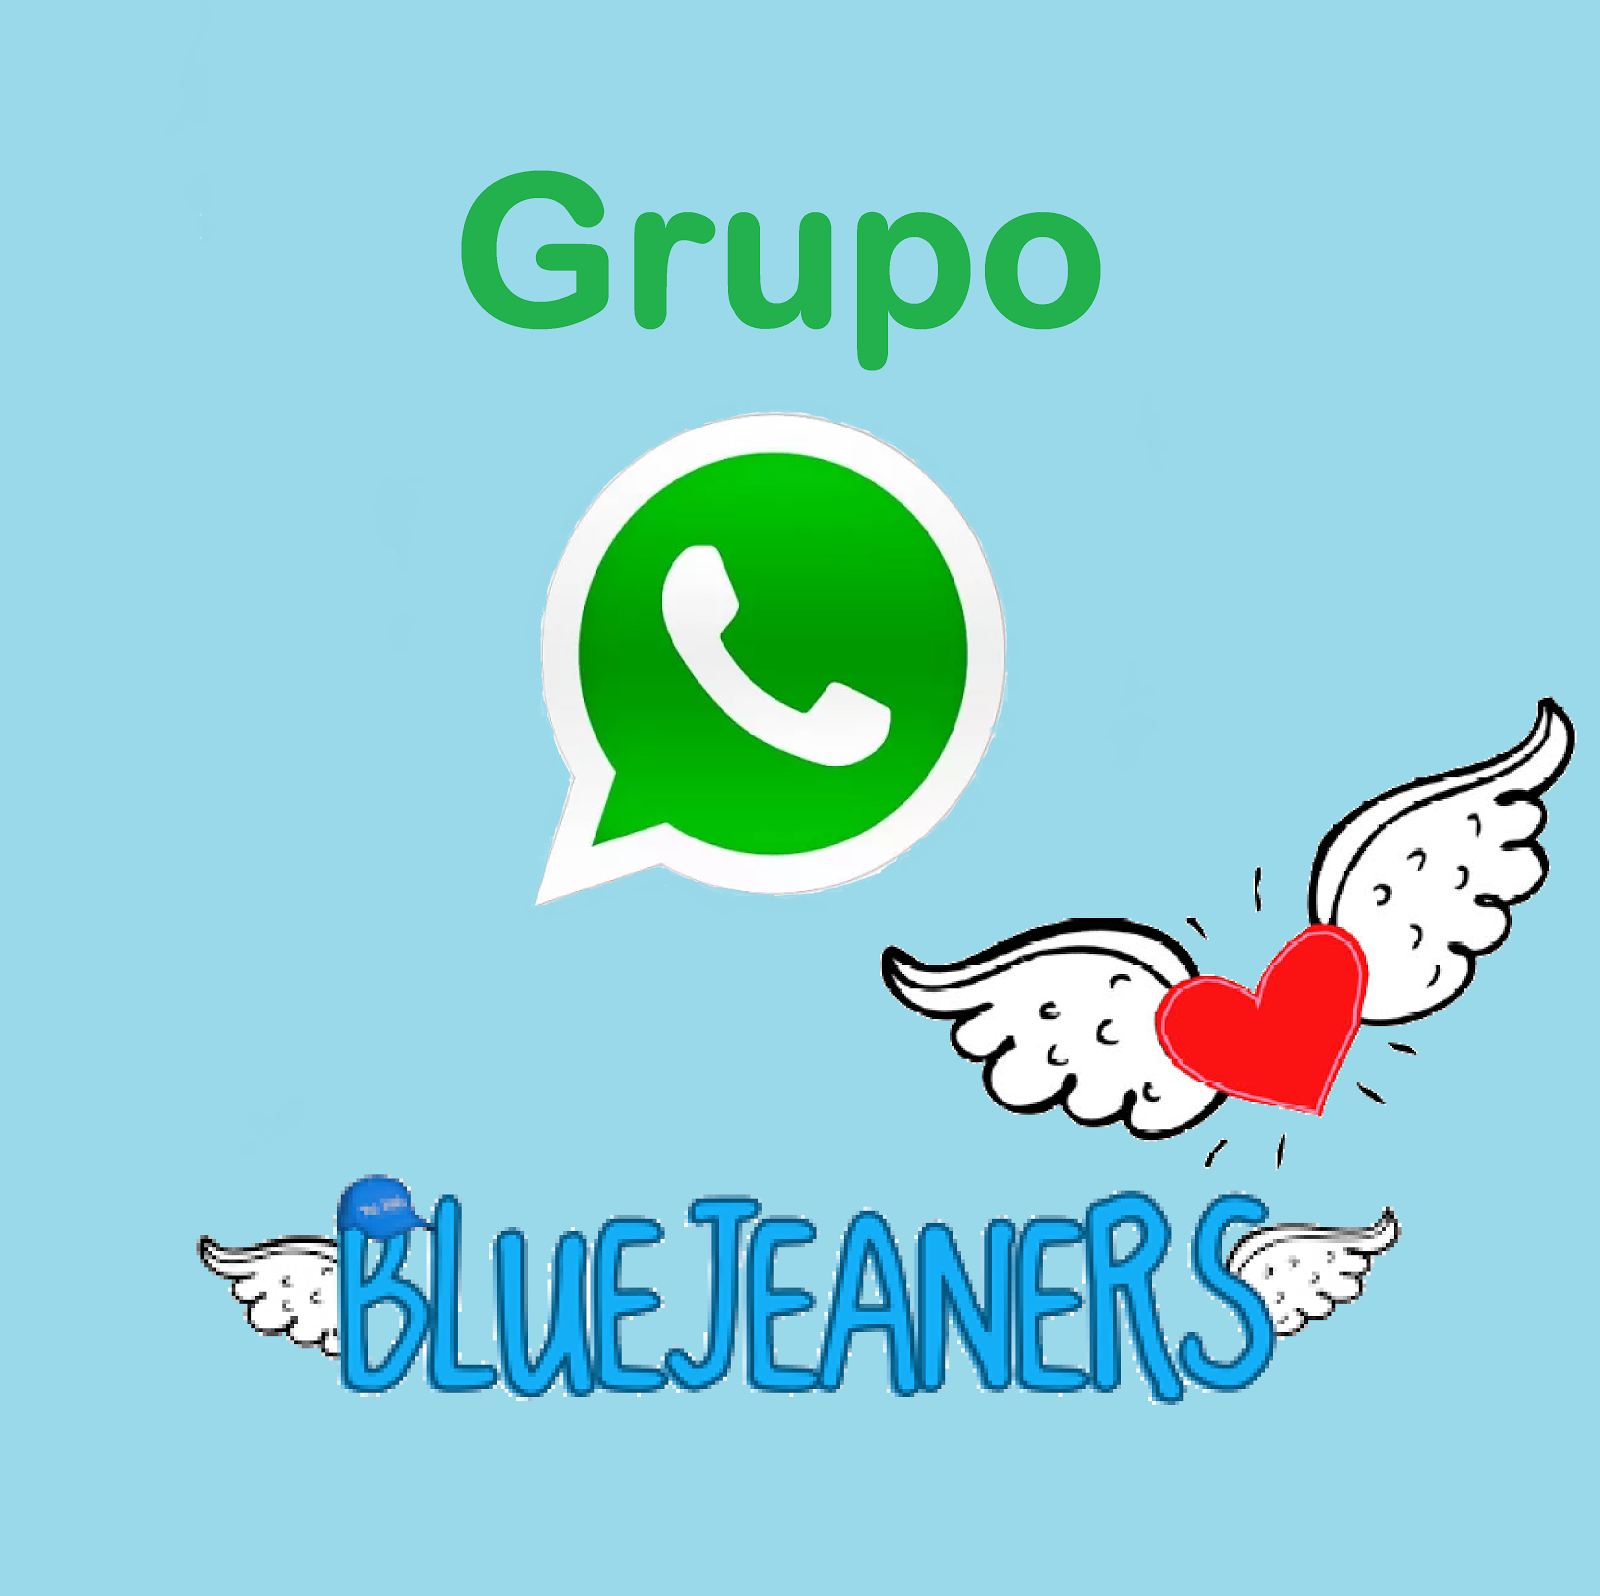 Grupo WA Bluejeaners